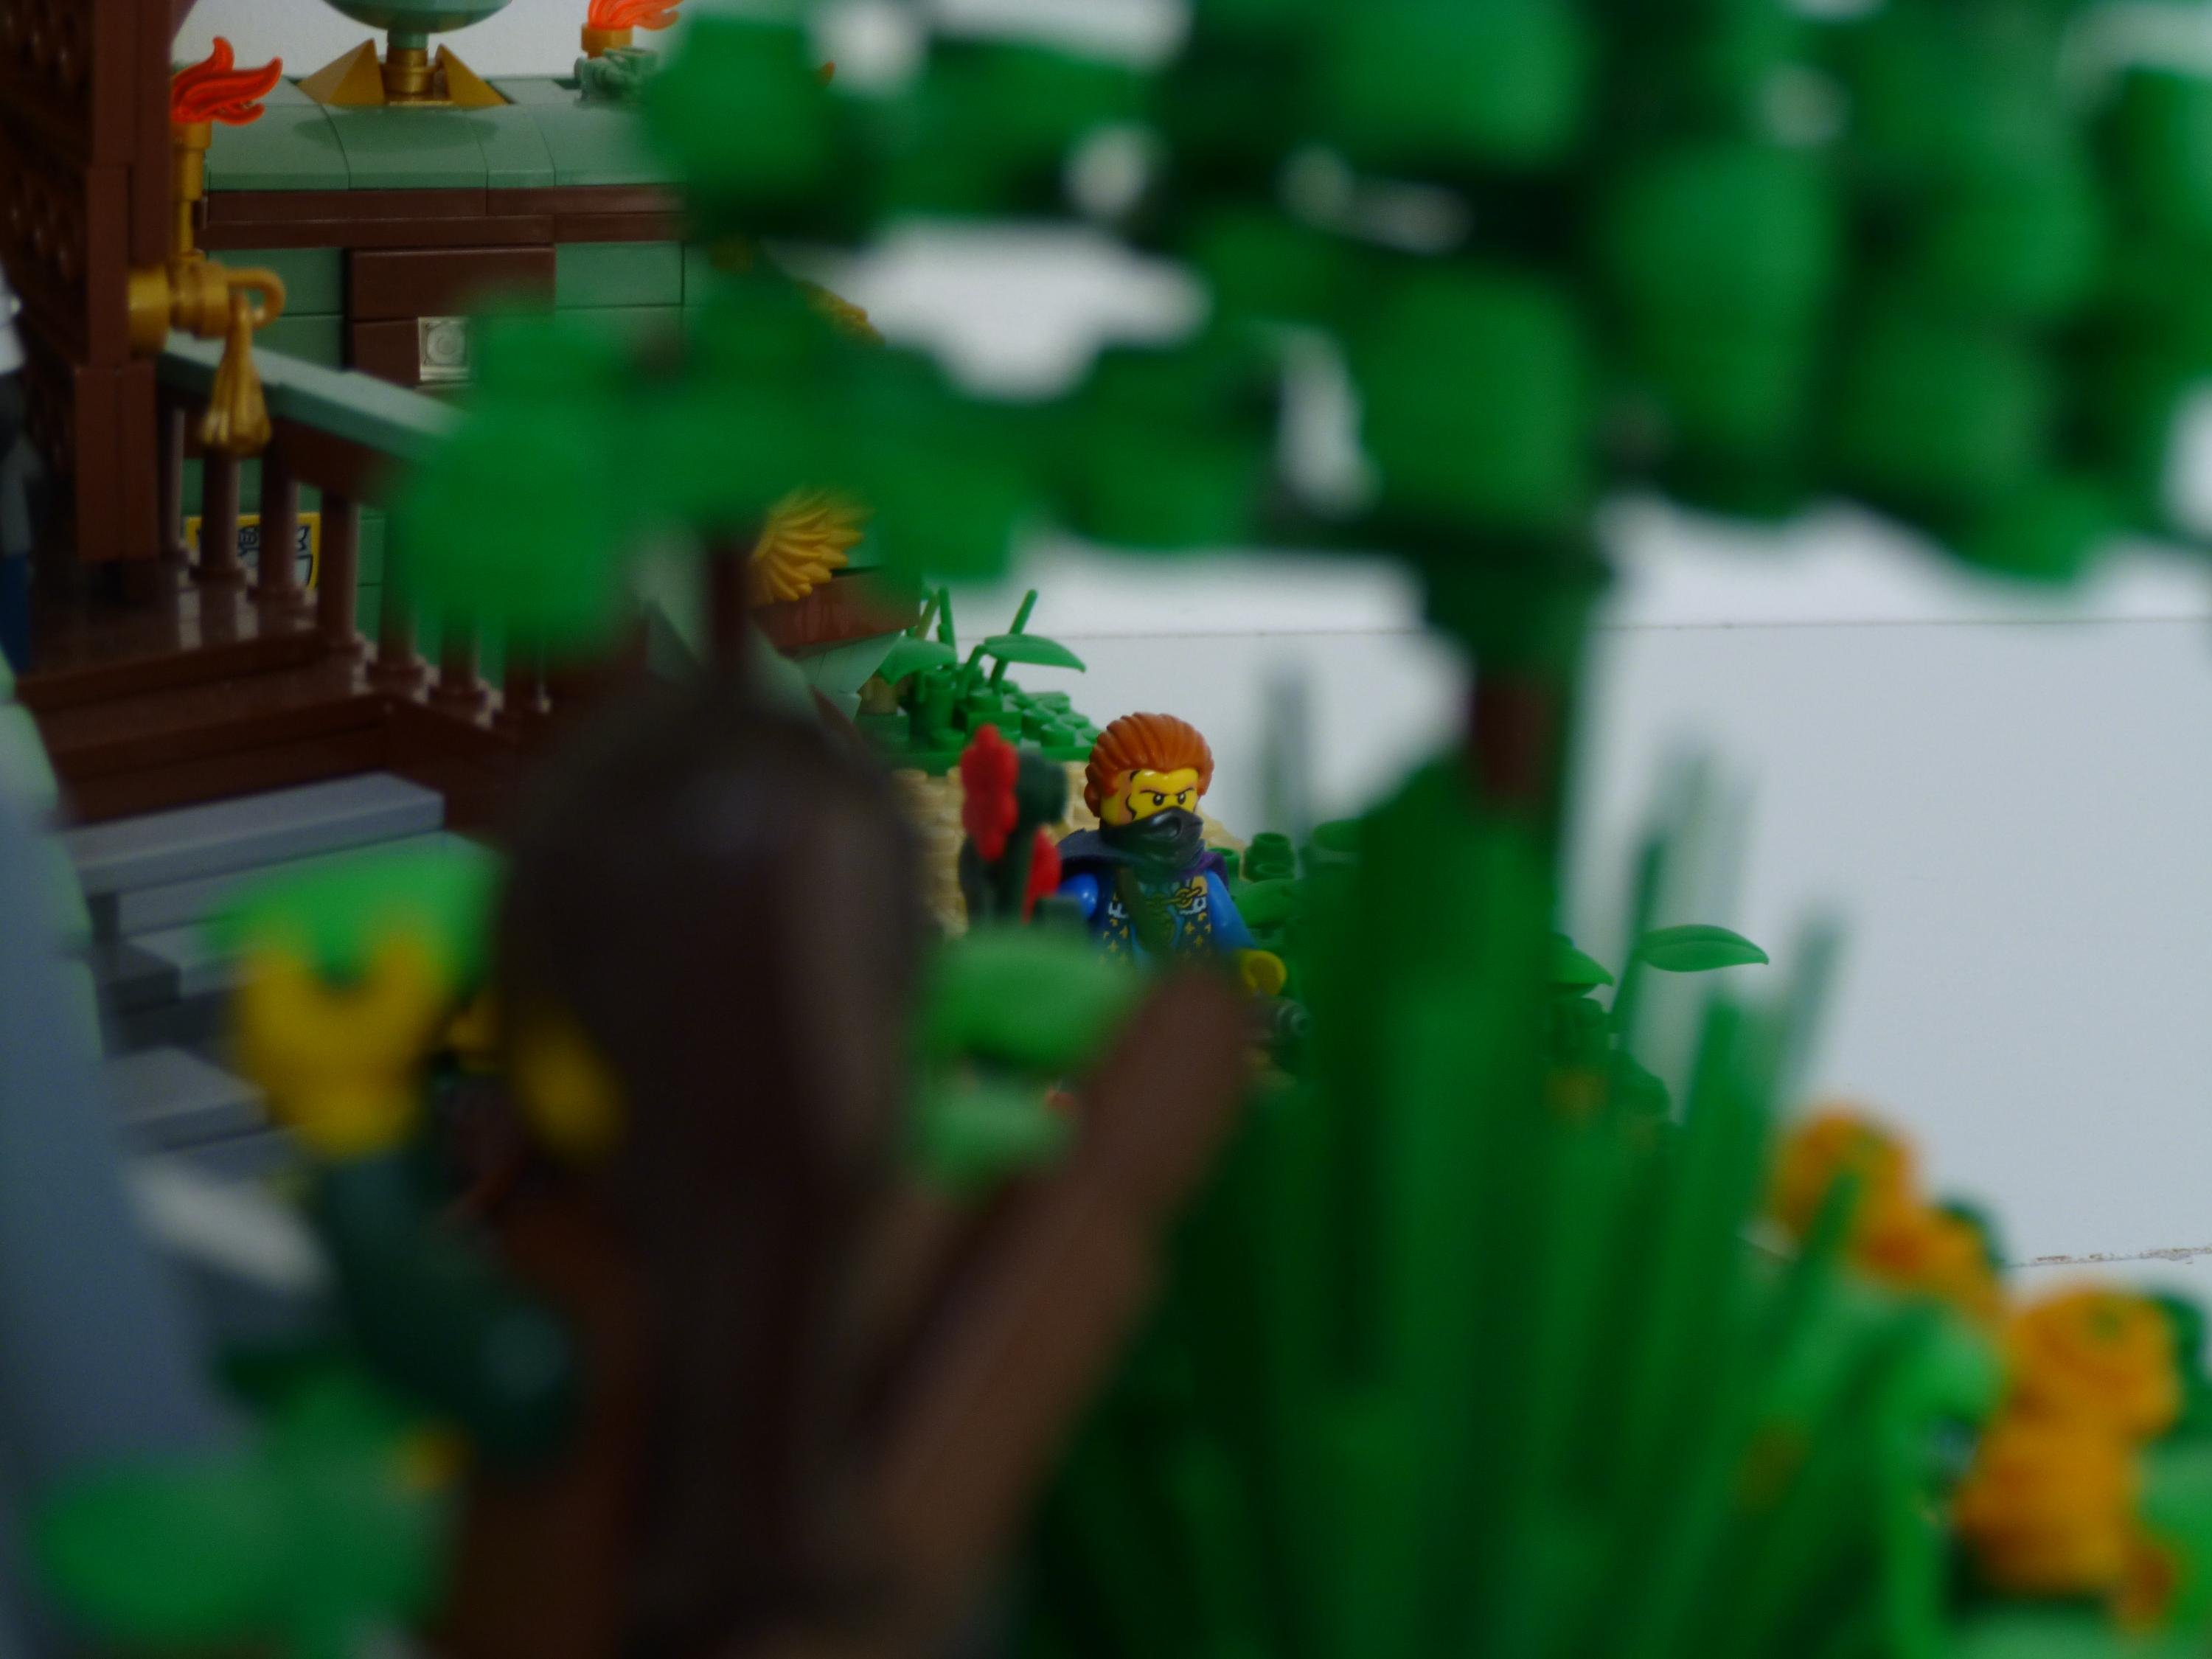 Boindil_Lego cover photo